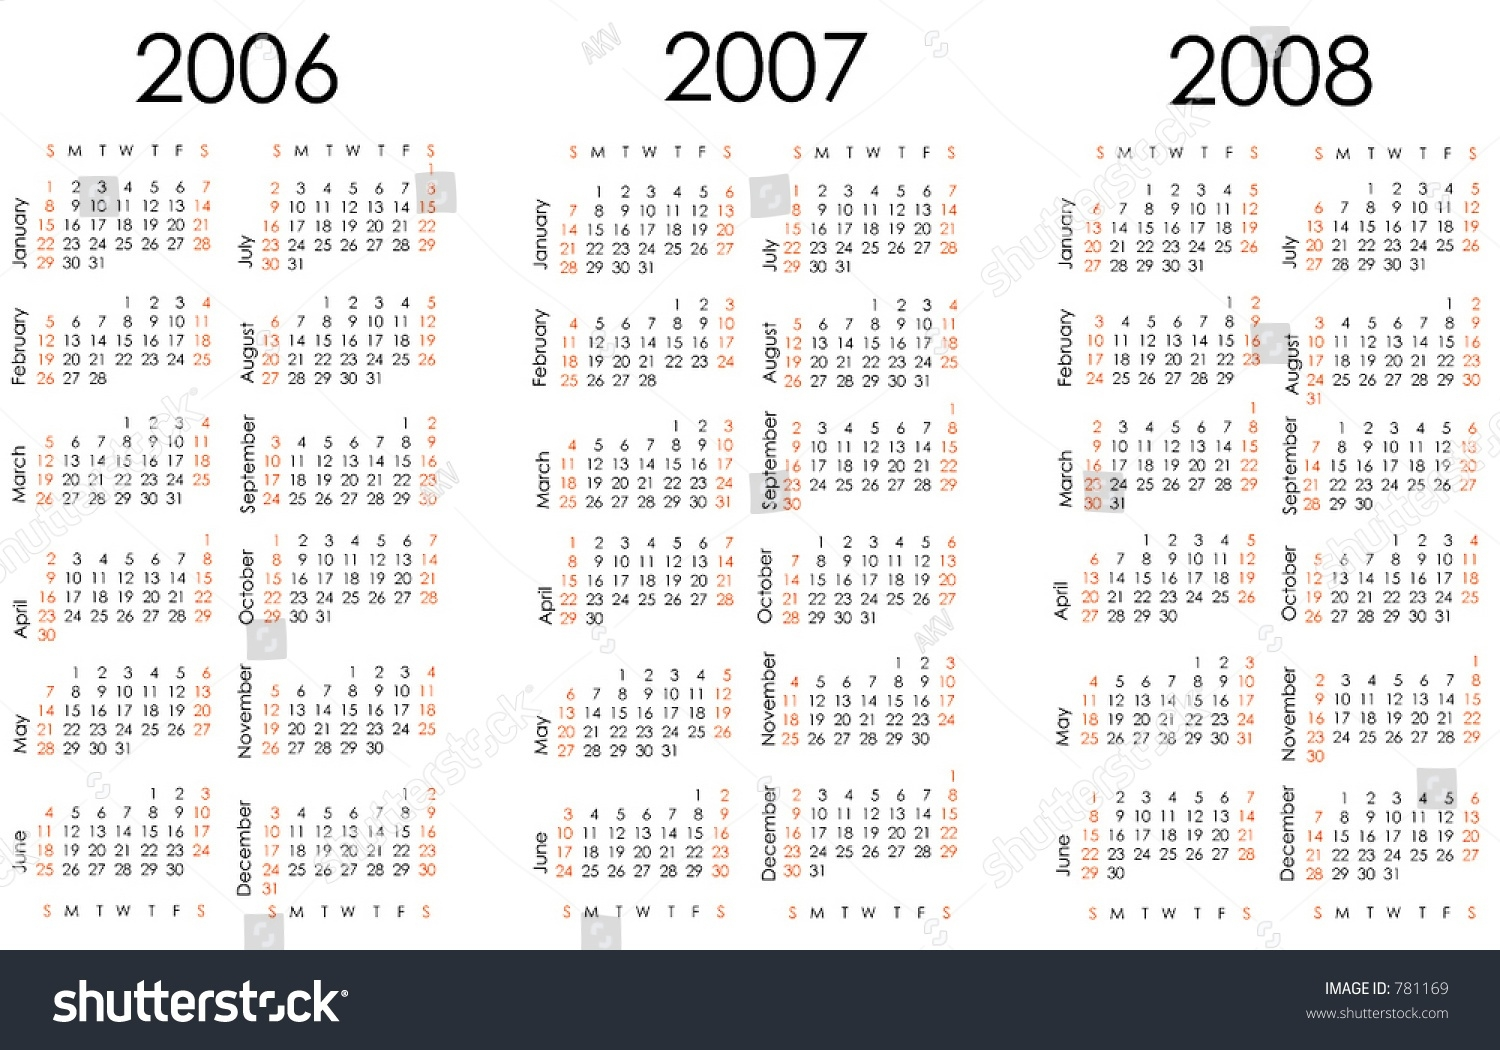 Calendar Next Three Years All Numbers Stock Vector 781169 - Shutterstock  Calendar With All The Years